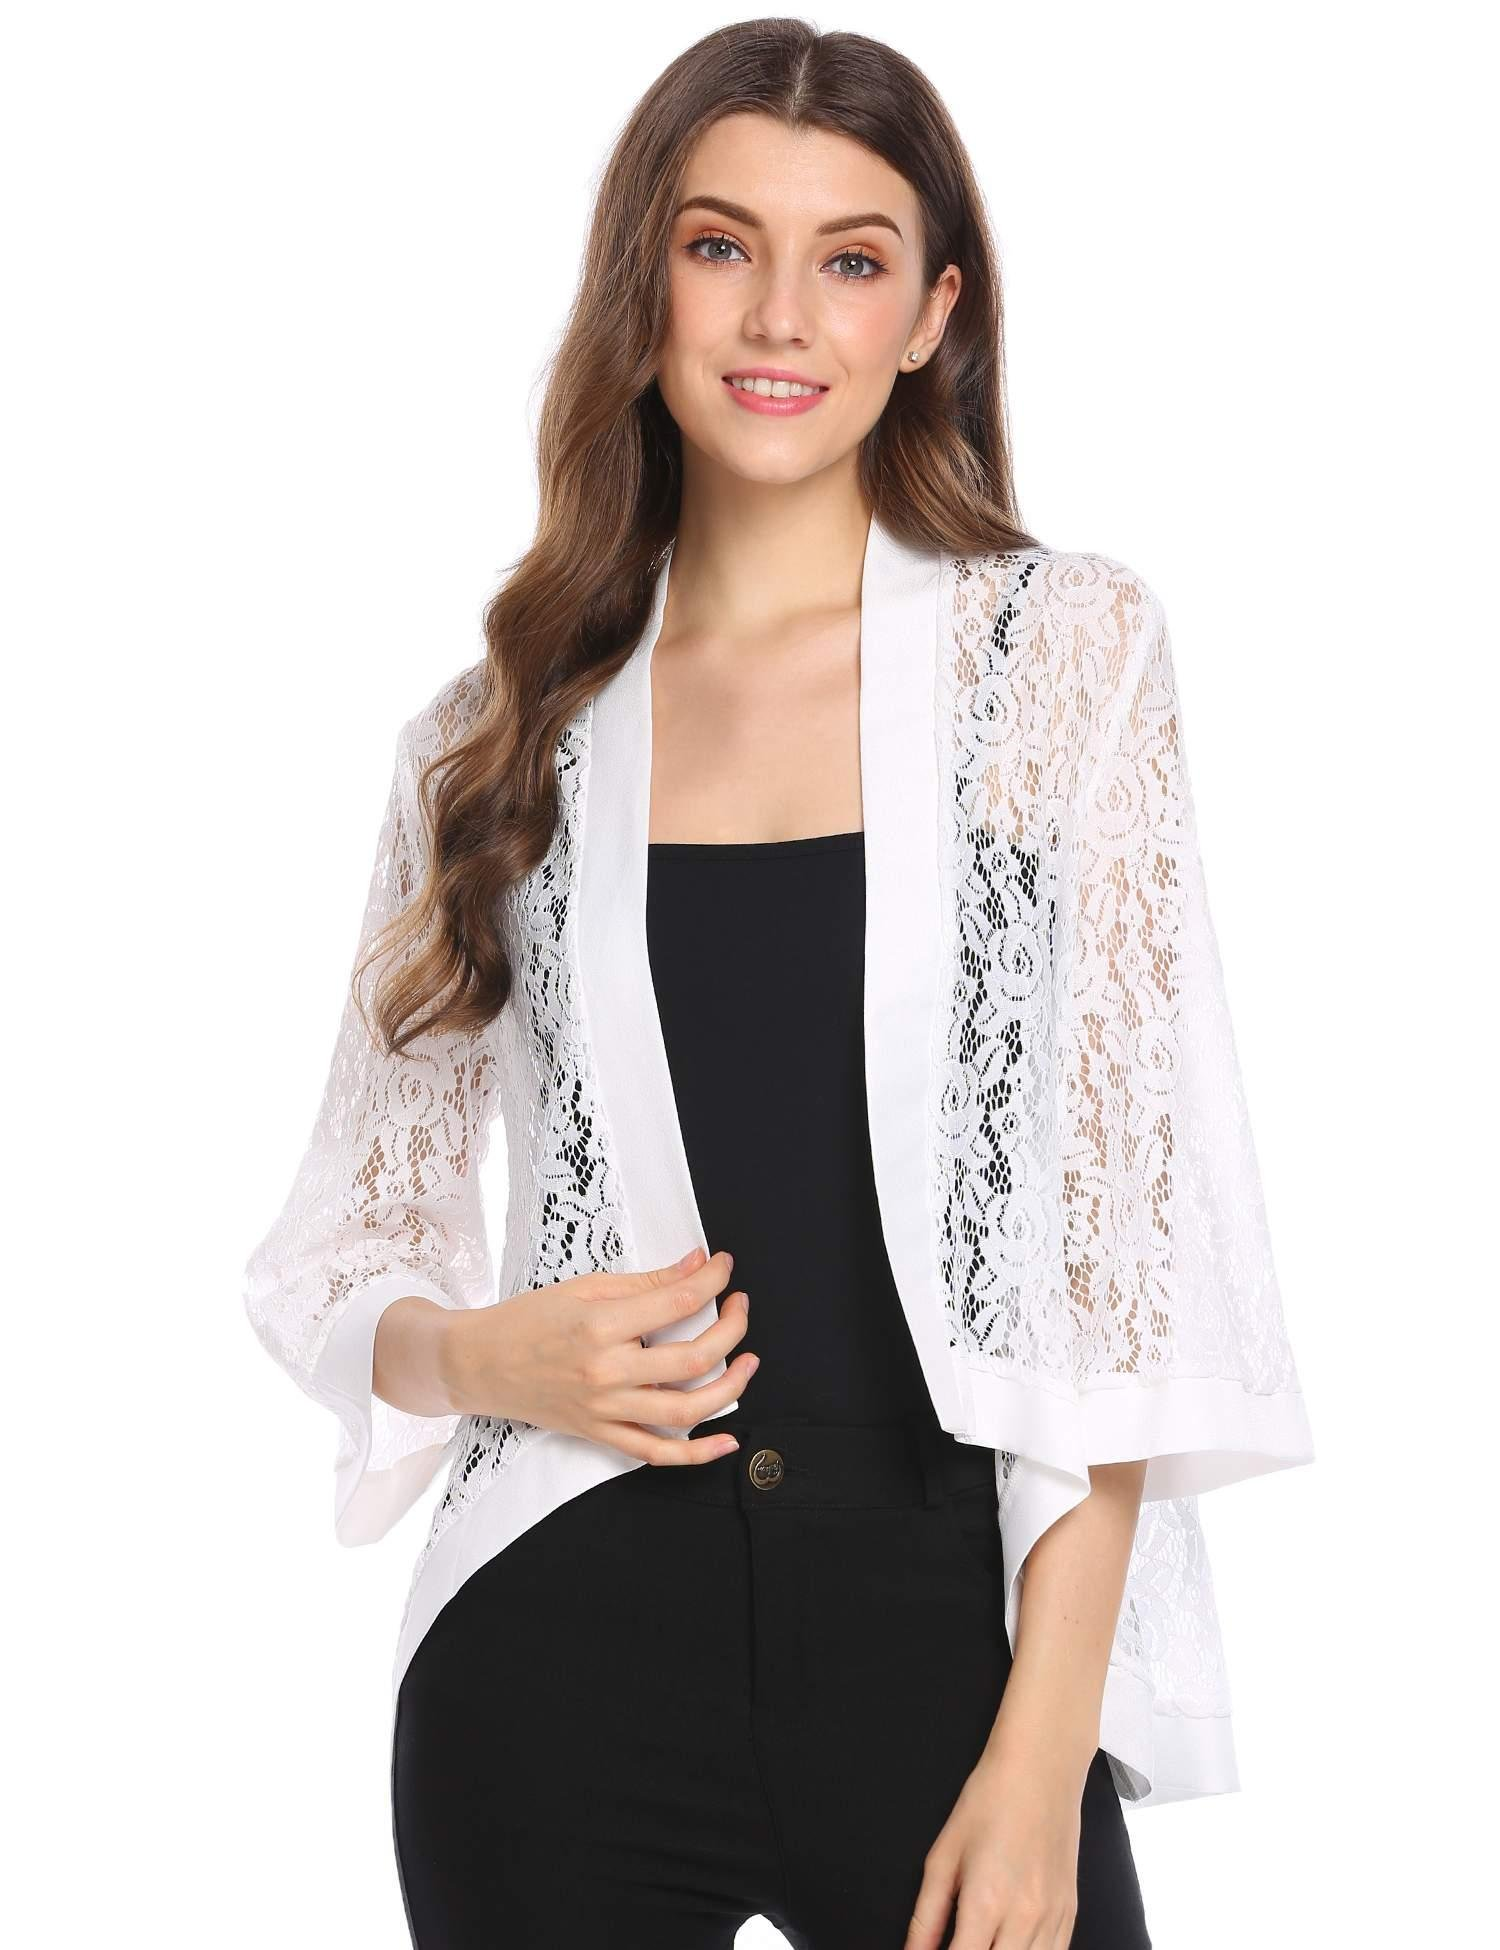 Dealwell Women's Lace Cardigan Lightweight 3 4 Sleeve Dressy Shrug Summer Jacket